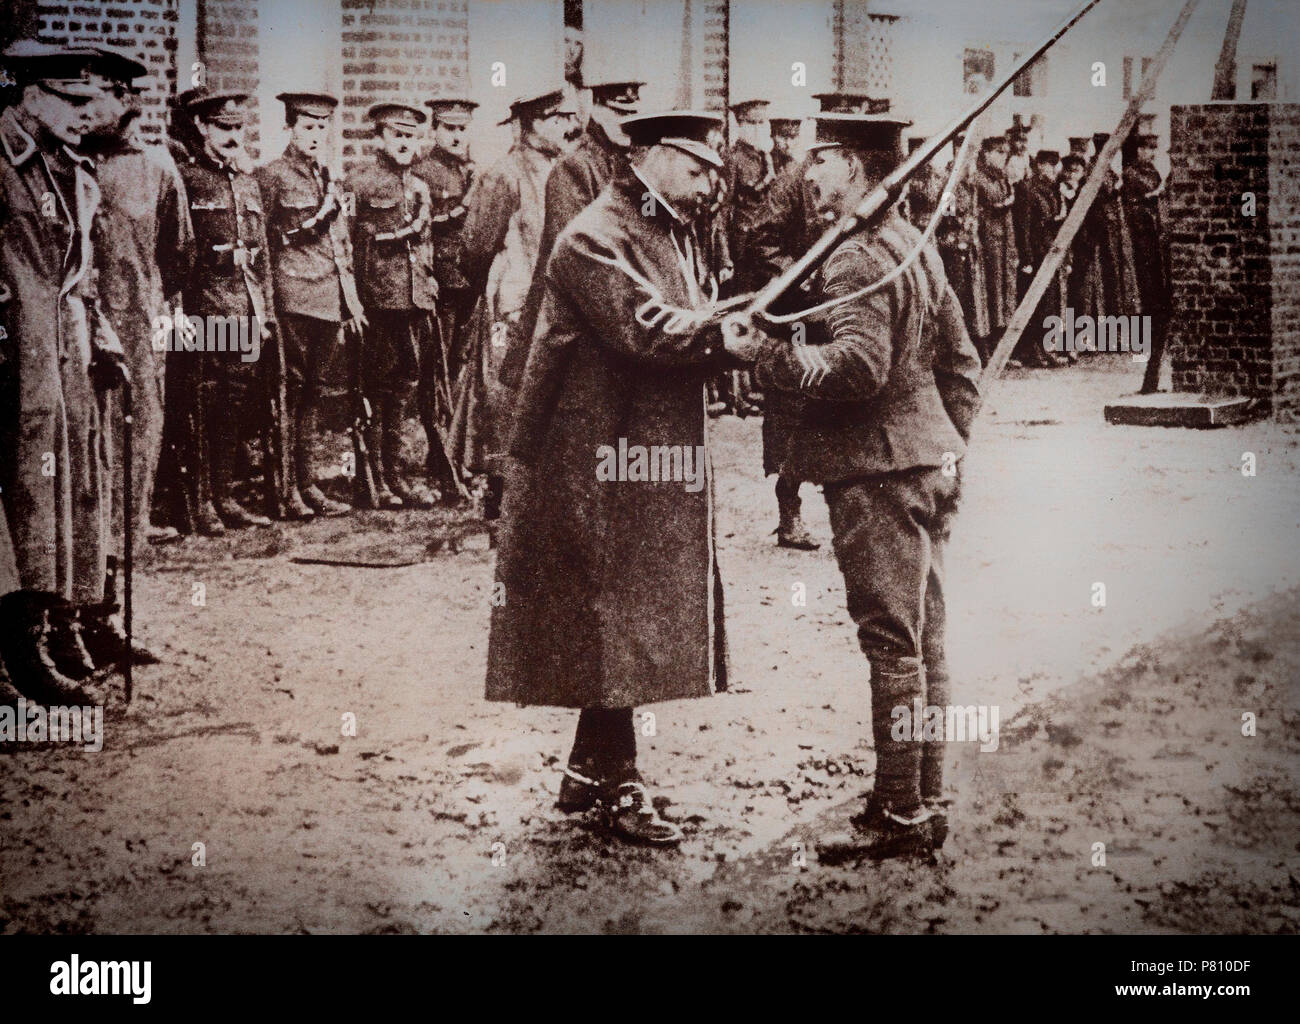 With the outbreak of World War 1, King George V crossed to France in November 1914 and spent several days with the troops. He decorated a soldier in the presence of Sir Douglas Haig, commander of the 1st Army Corps. - Stock Image